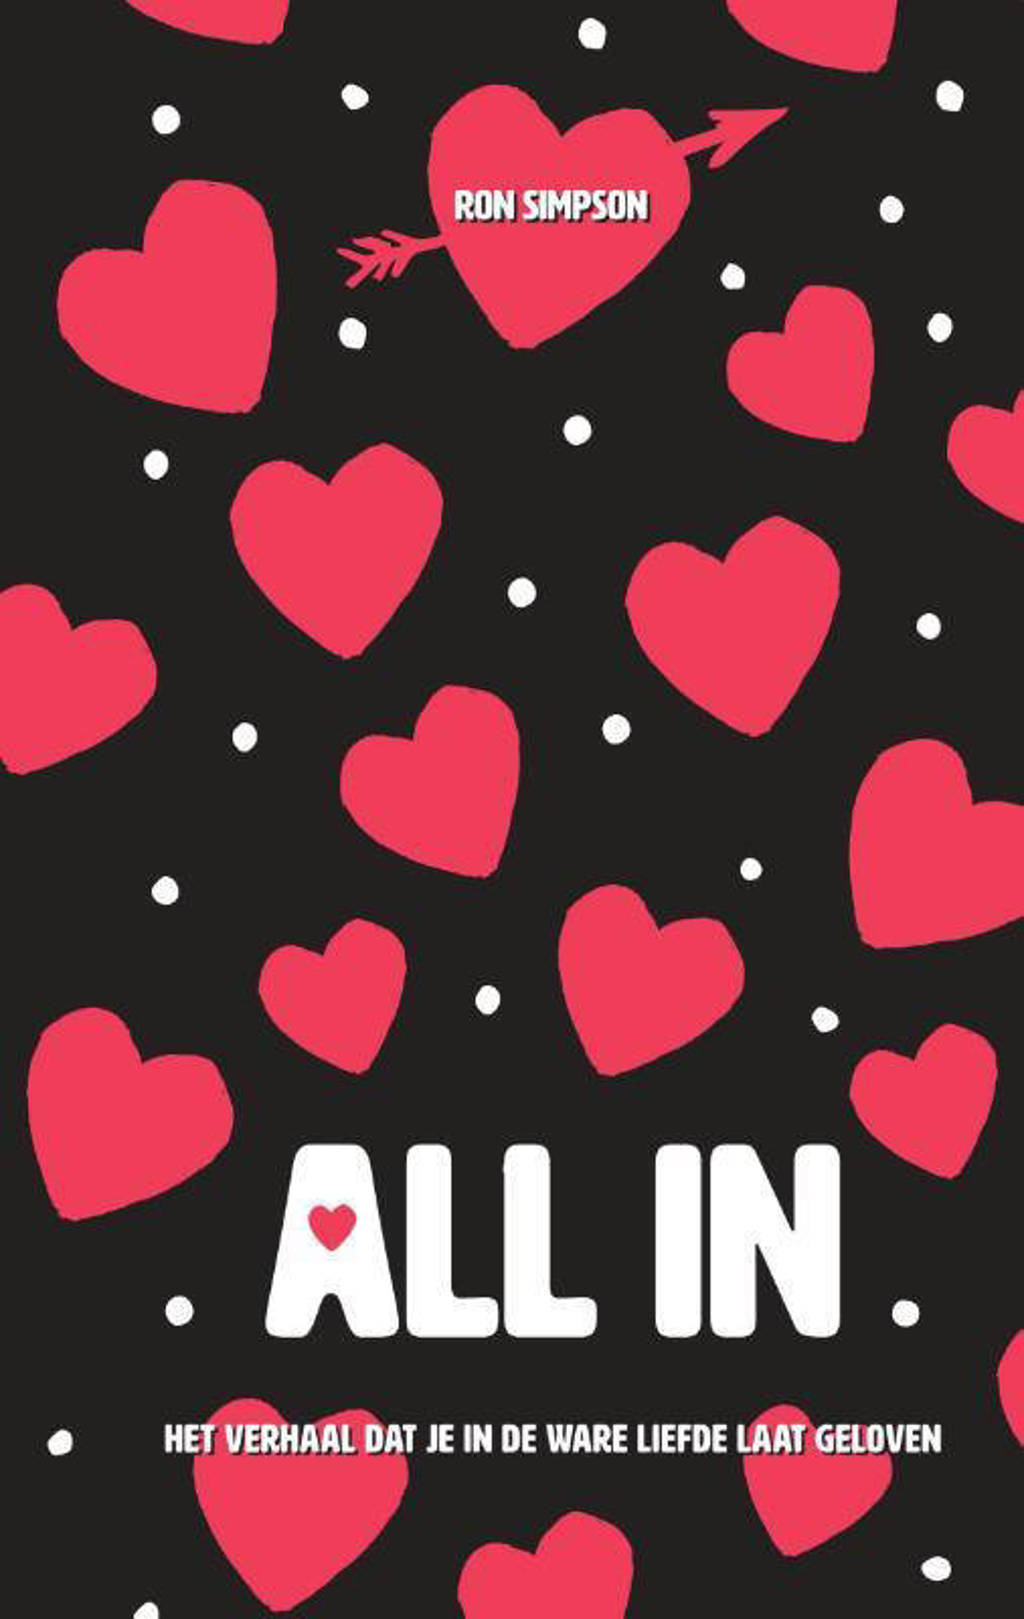 All in - Ron Simpson